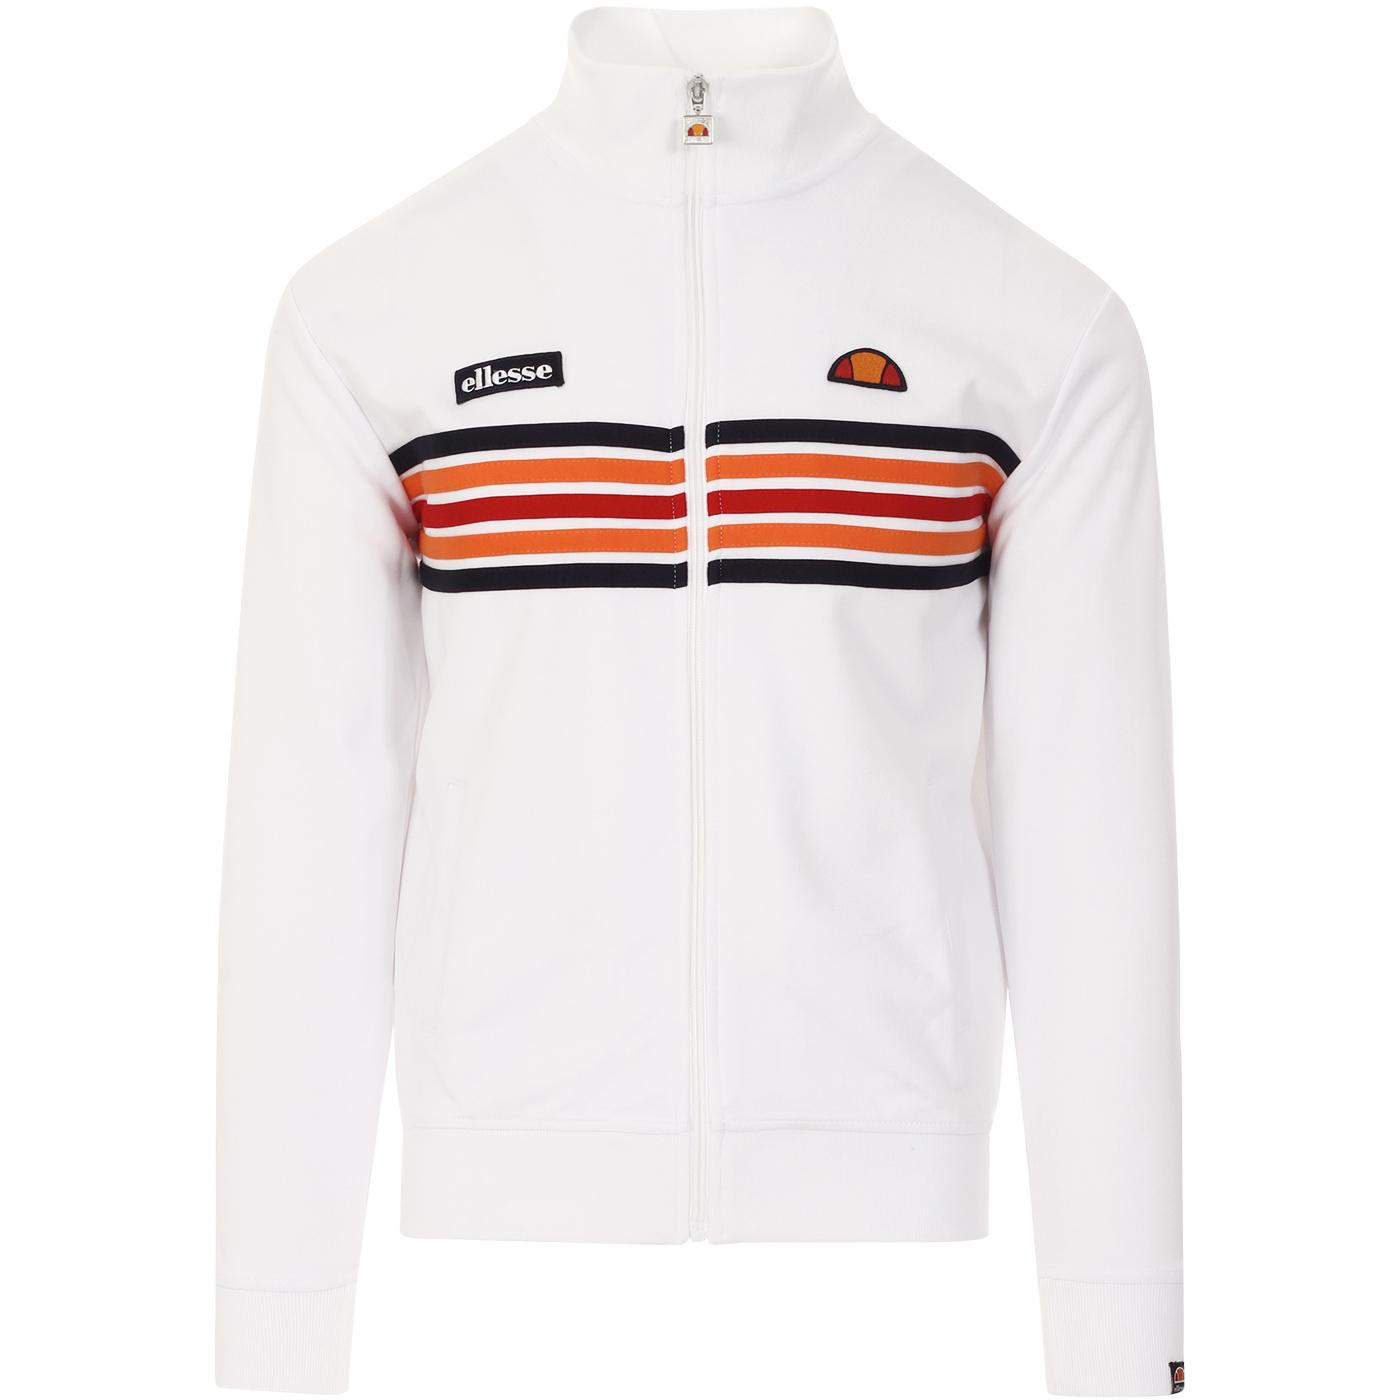 Vicenza ELLESSE Retro 80s Chest Stripe Track Top W